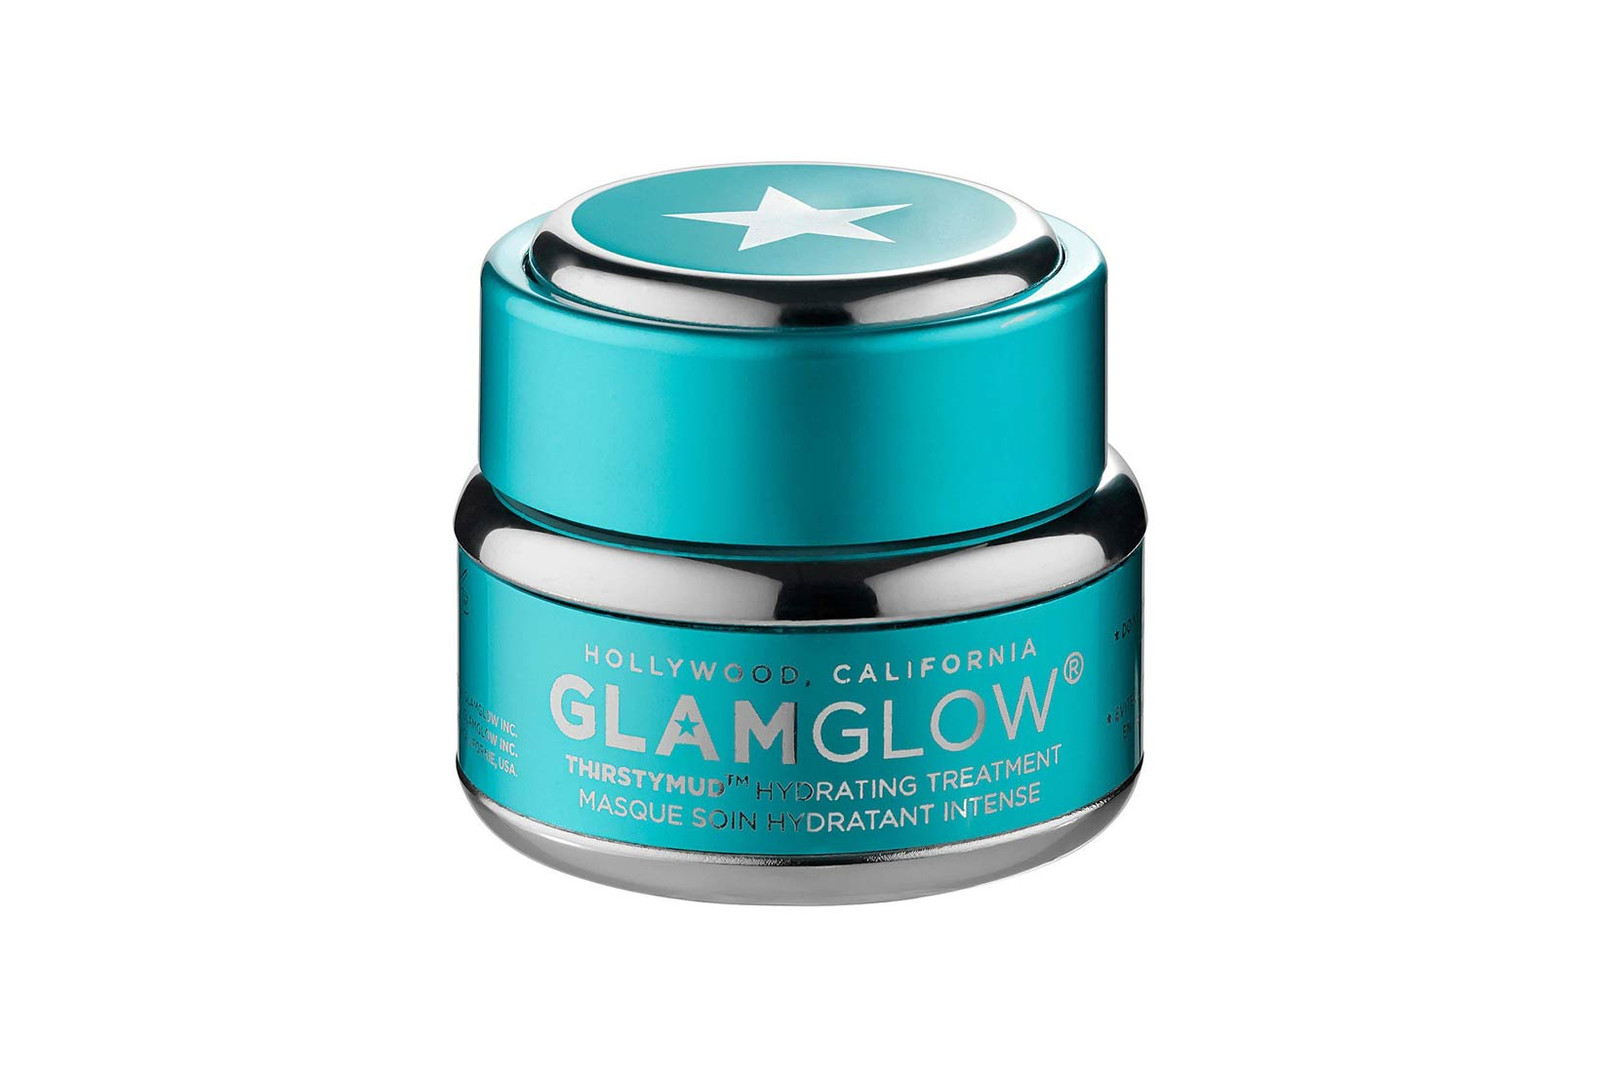 how to use glamglow mask